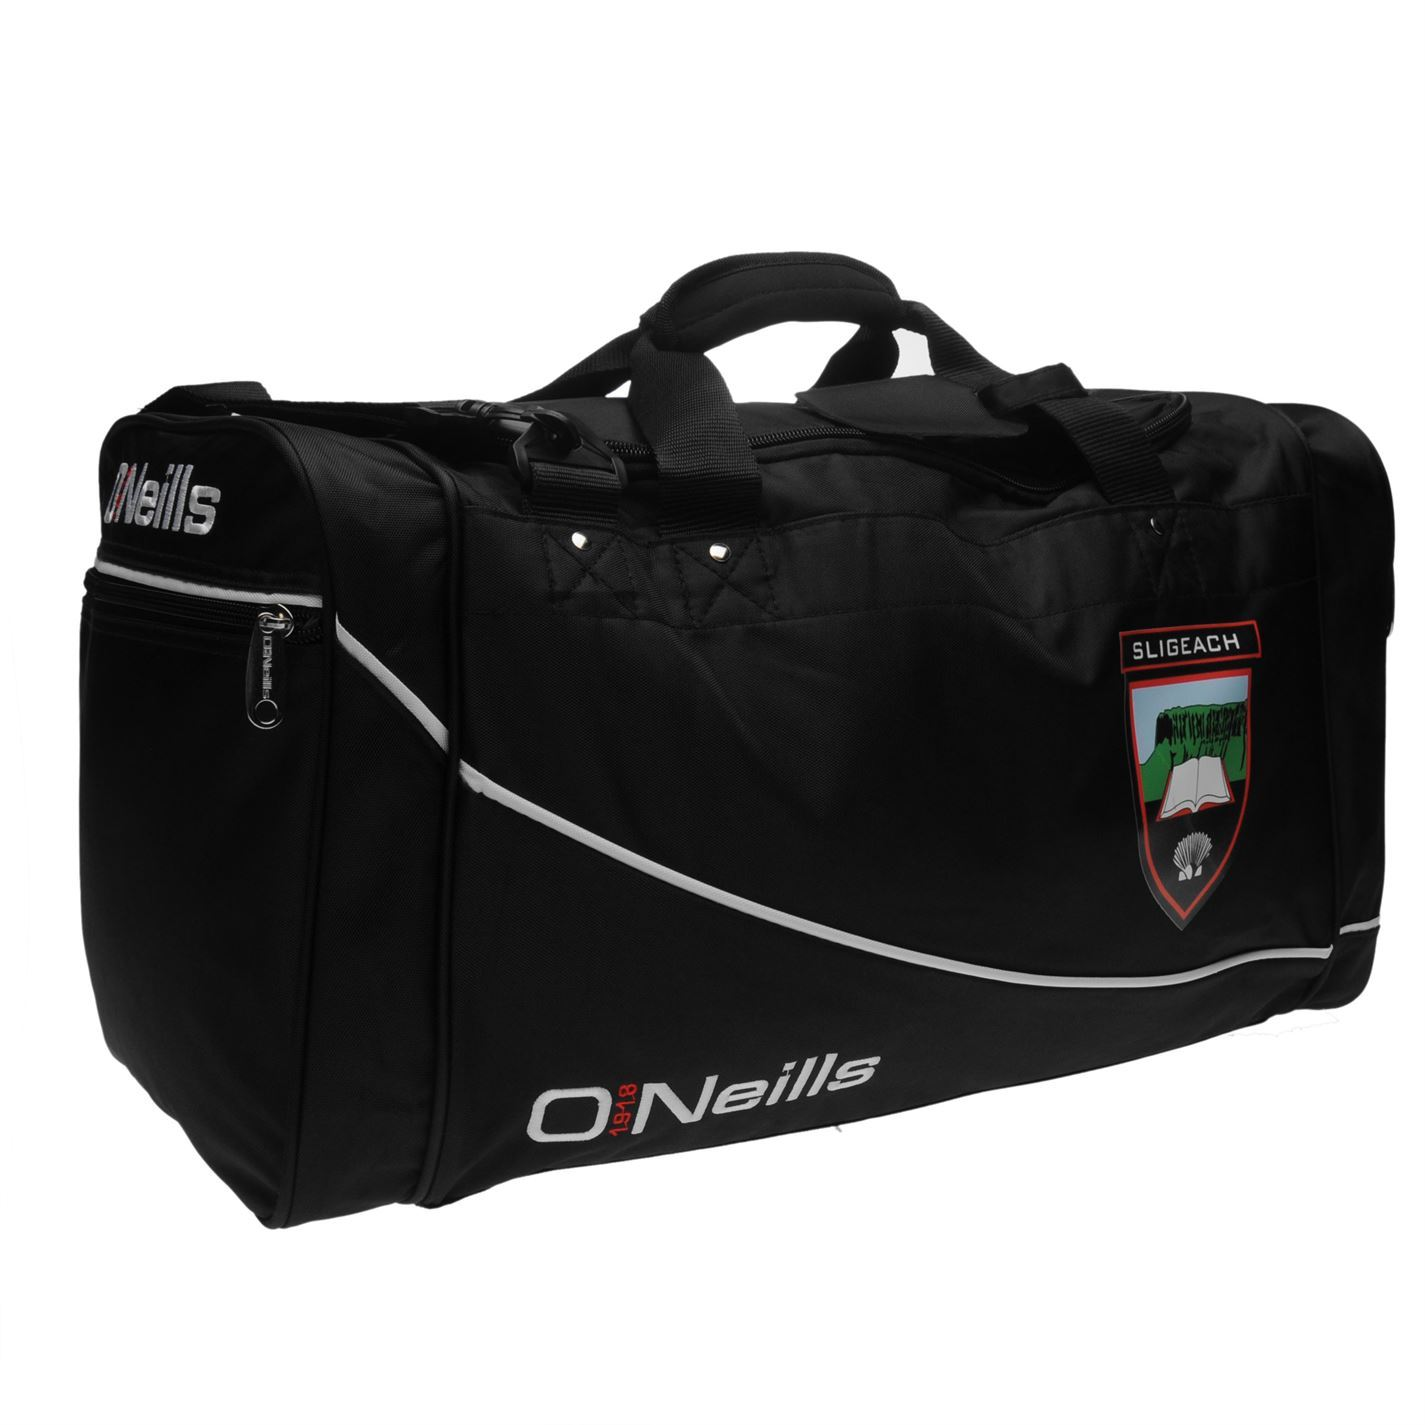 b411661eb481f5 ... O'Neills Sligo GAA Burren Holdall Black/White Sports Kit Bag Gymbag  Carryall ...